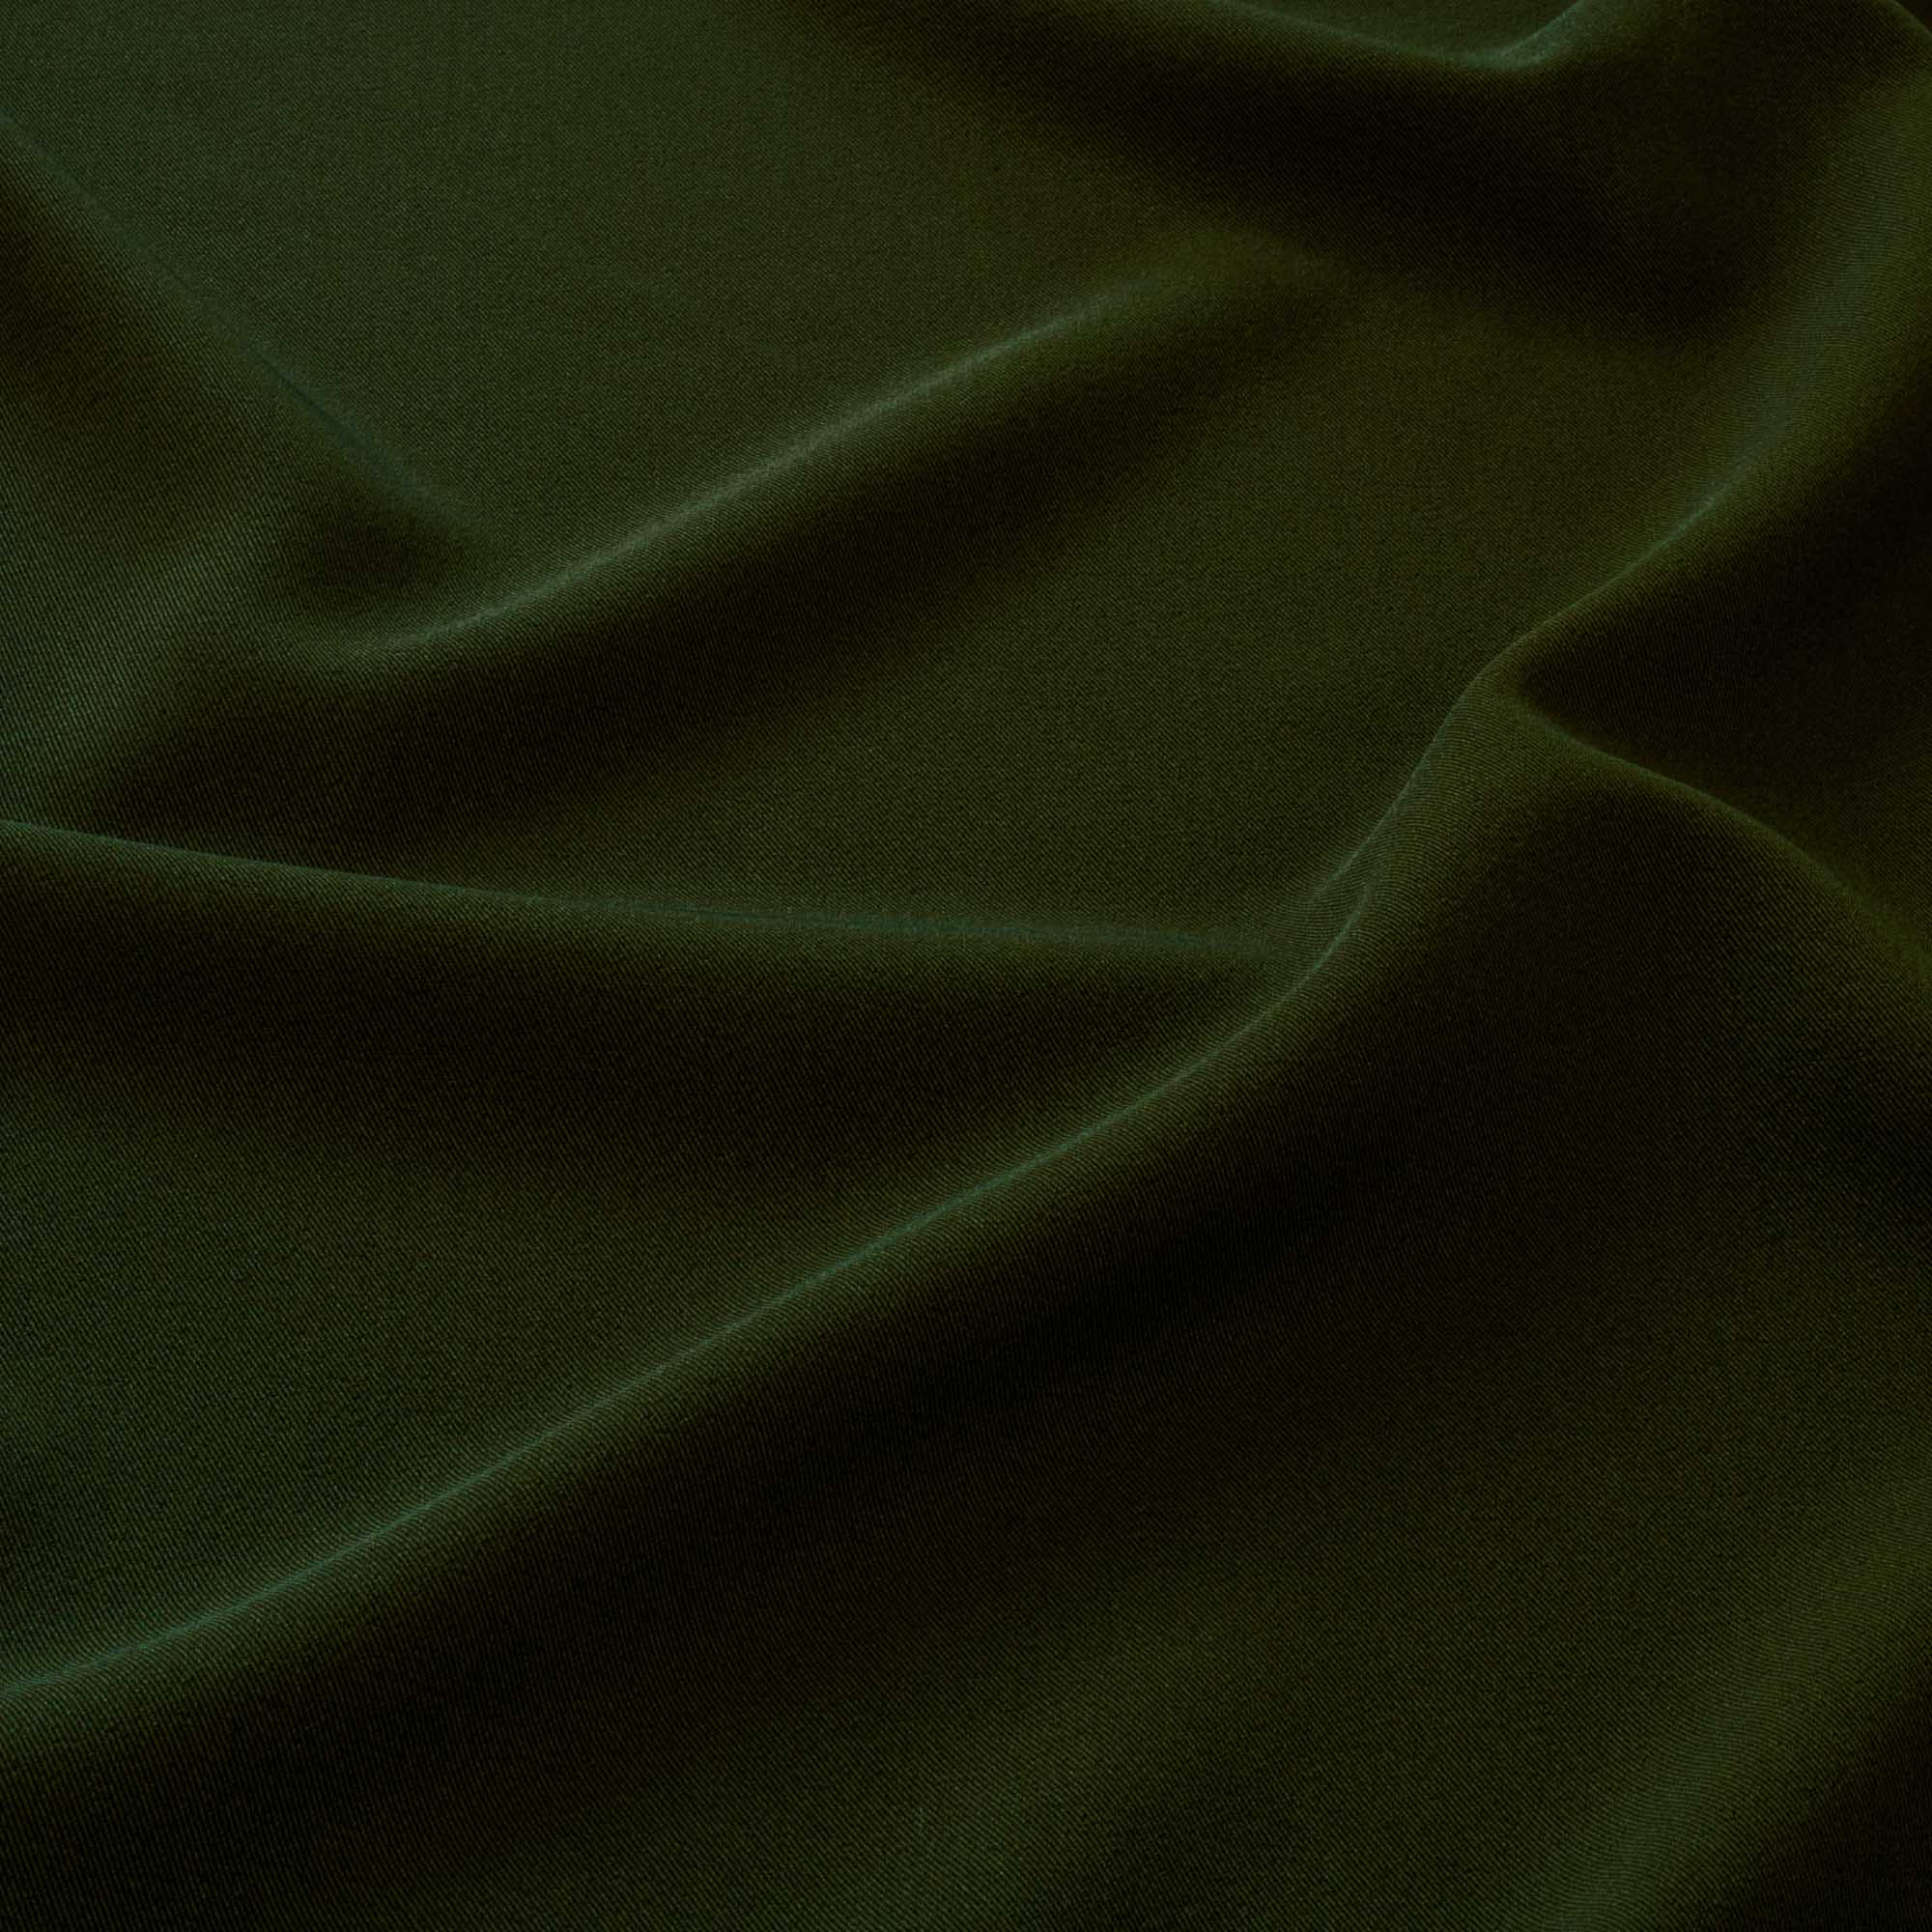 Tecido Gabardine Two Way Verde Exercito Com Elastano 1,50 Mt Largura